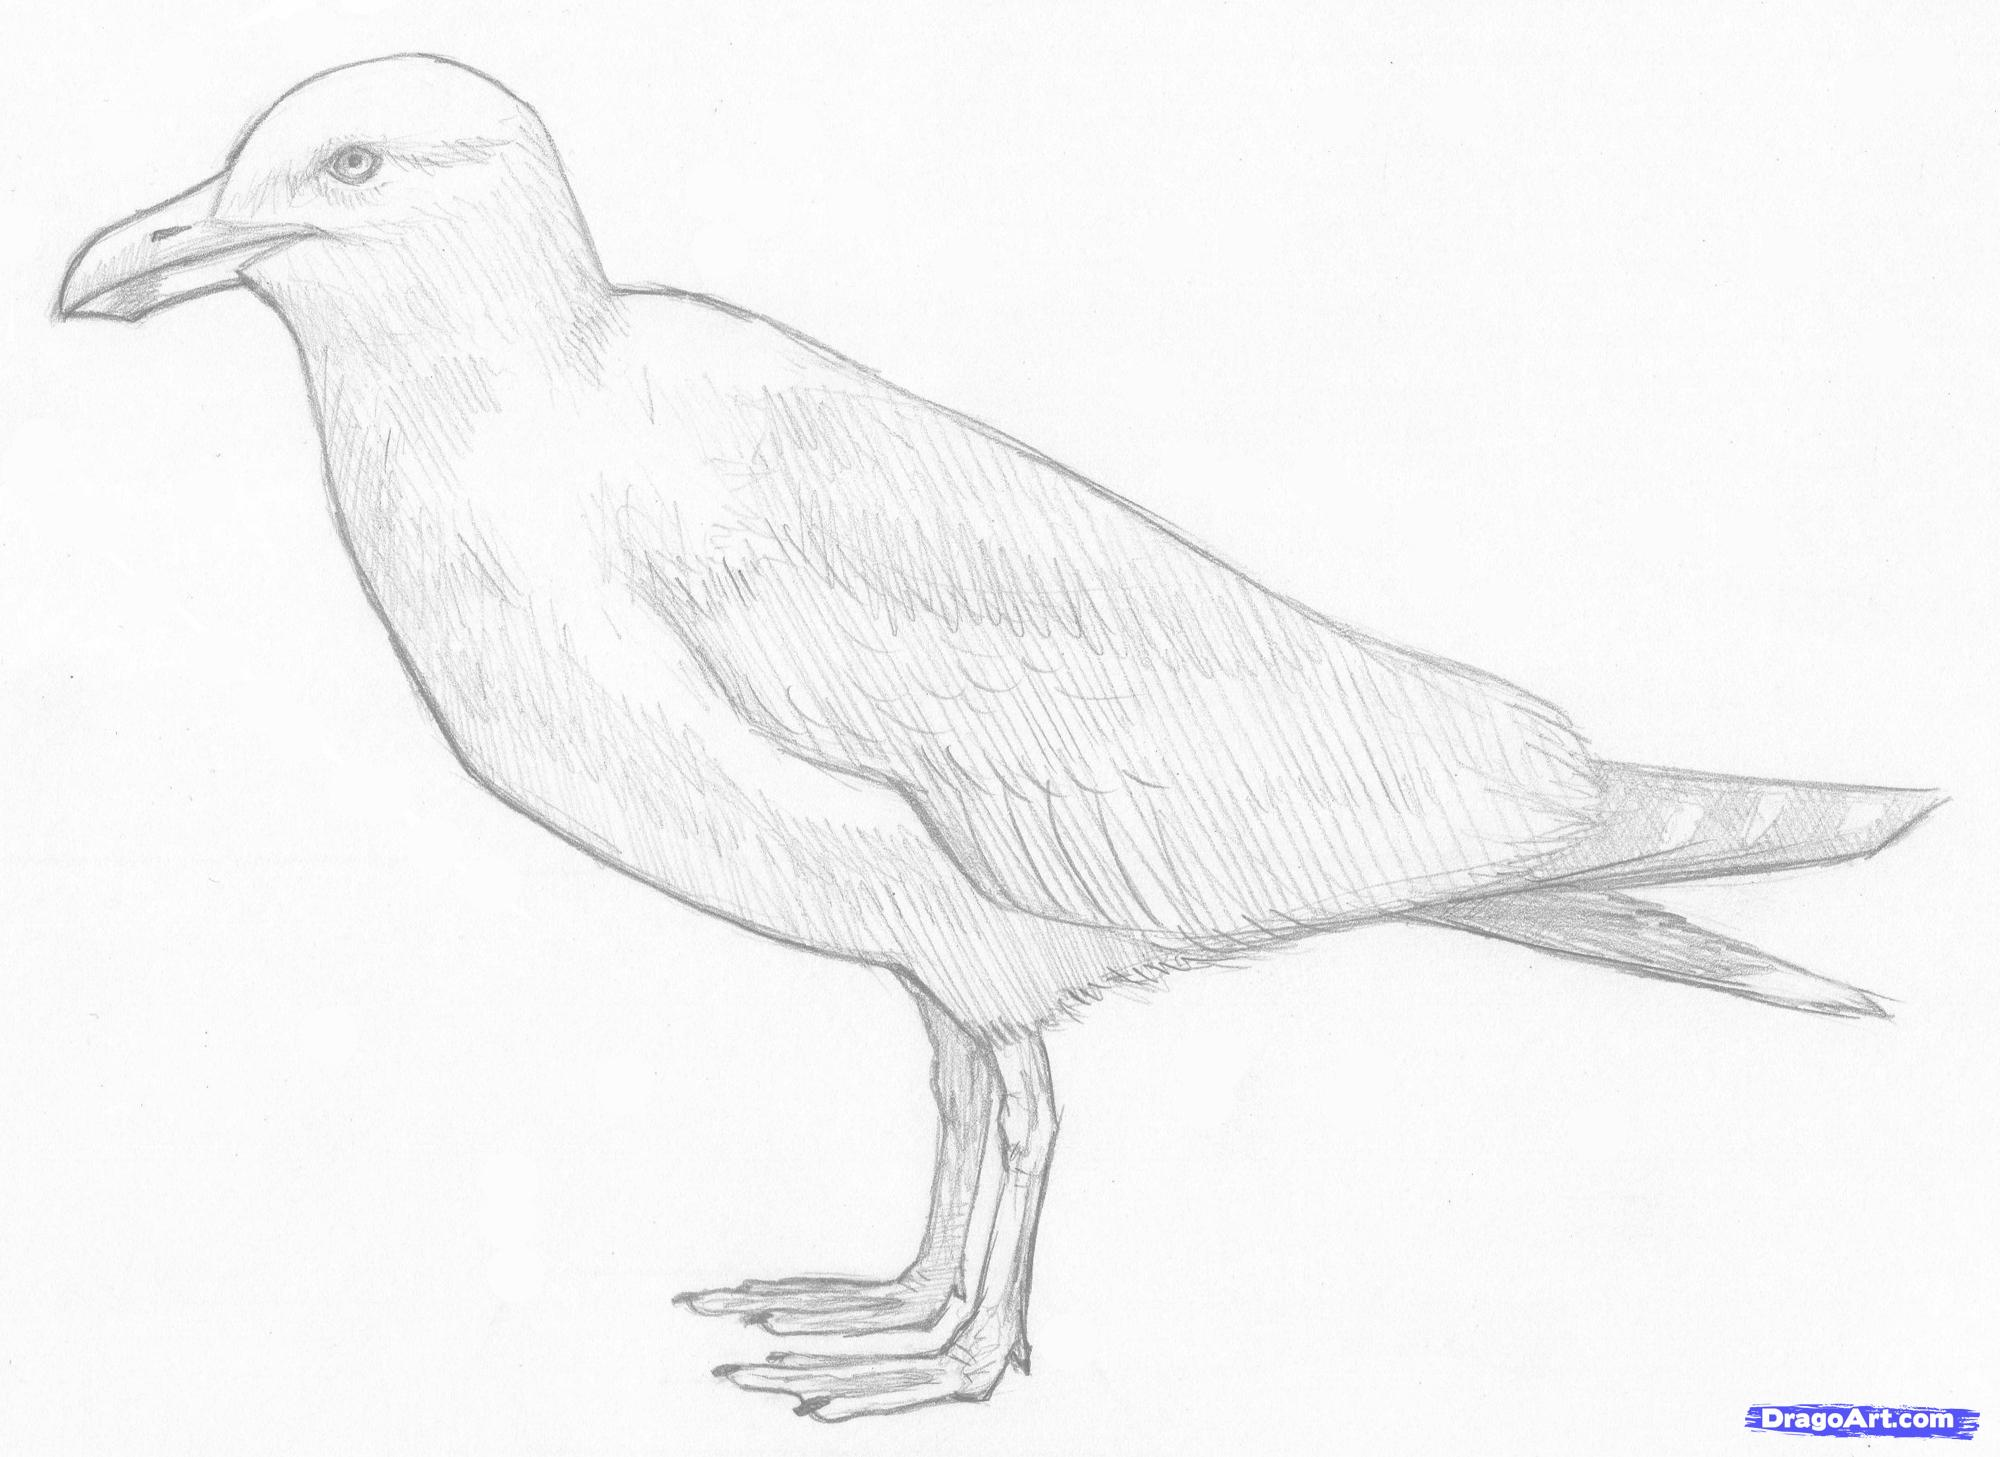 Drawn seagull seagul Drawing Seagull photo#3 Seagull Drawing